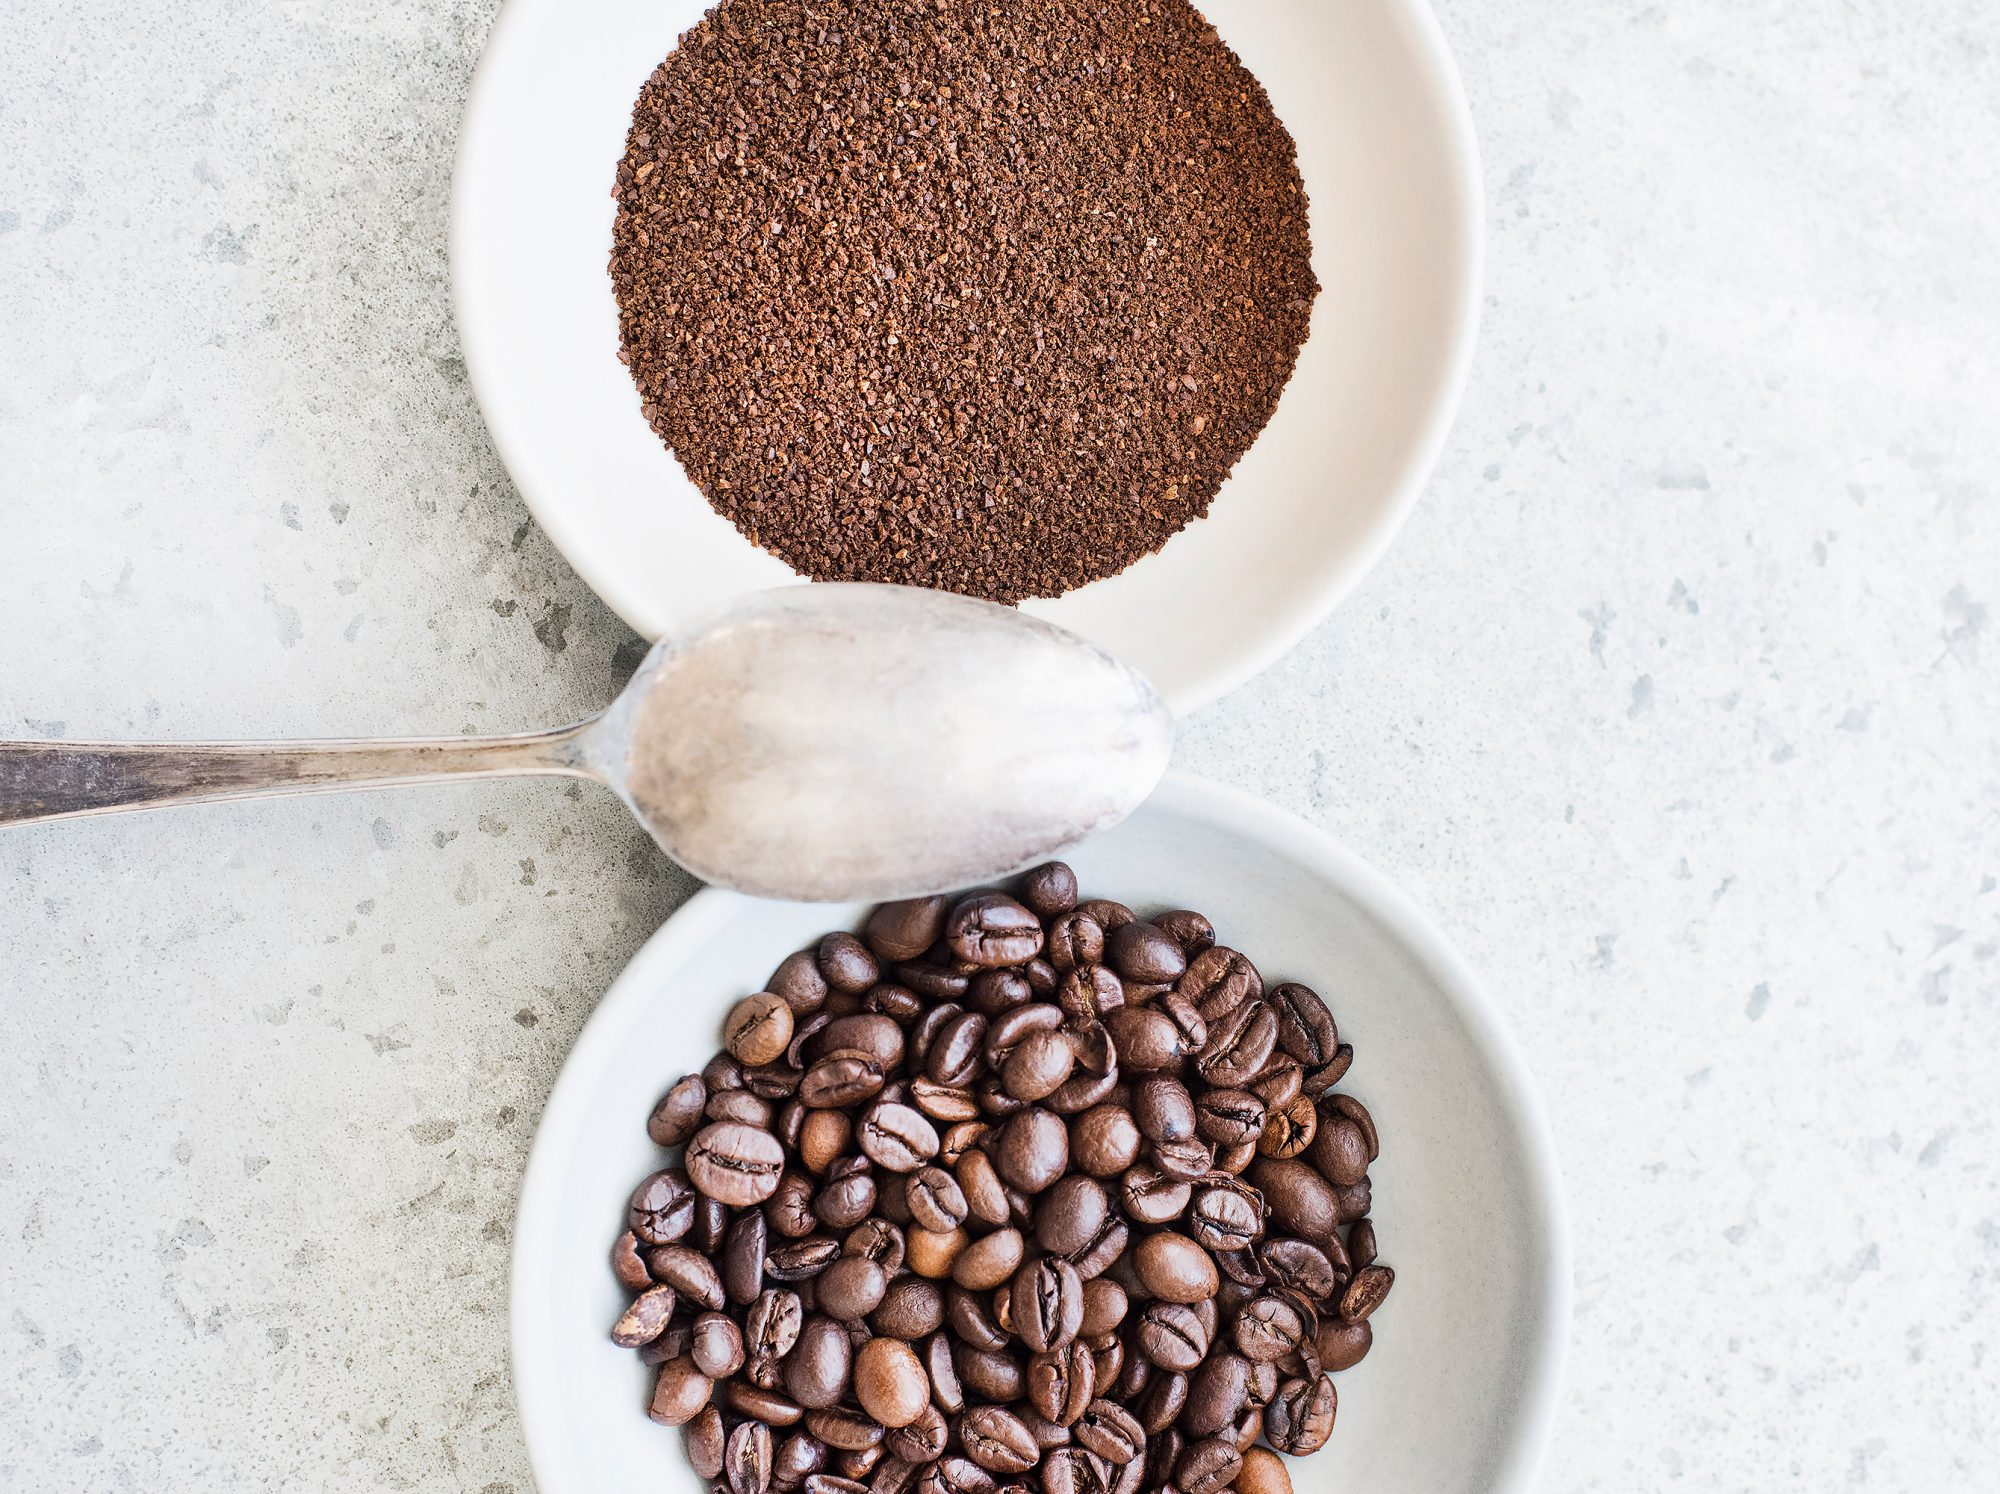 Coffee beans and ground coffee in bowls